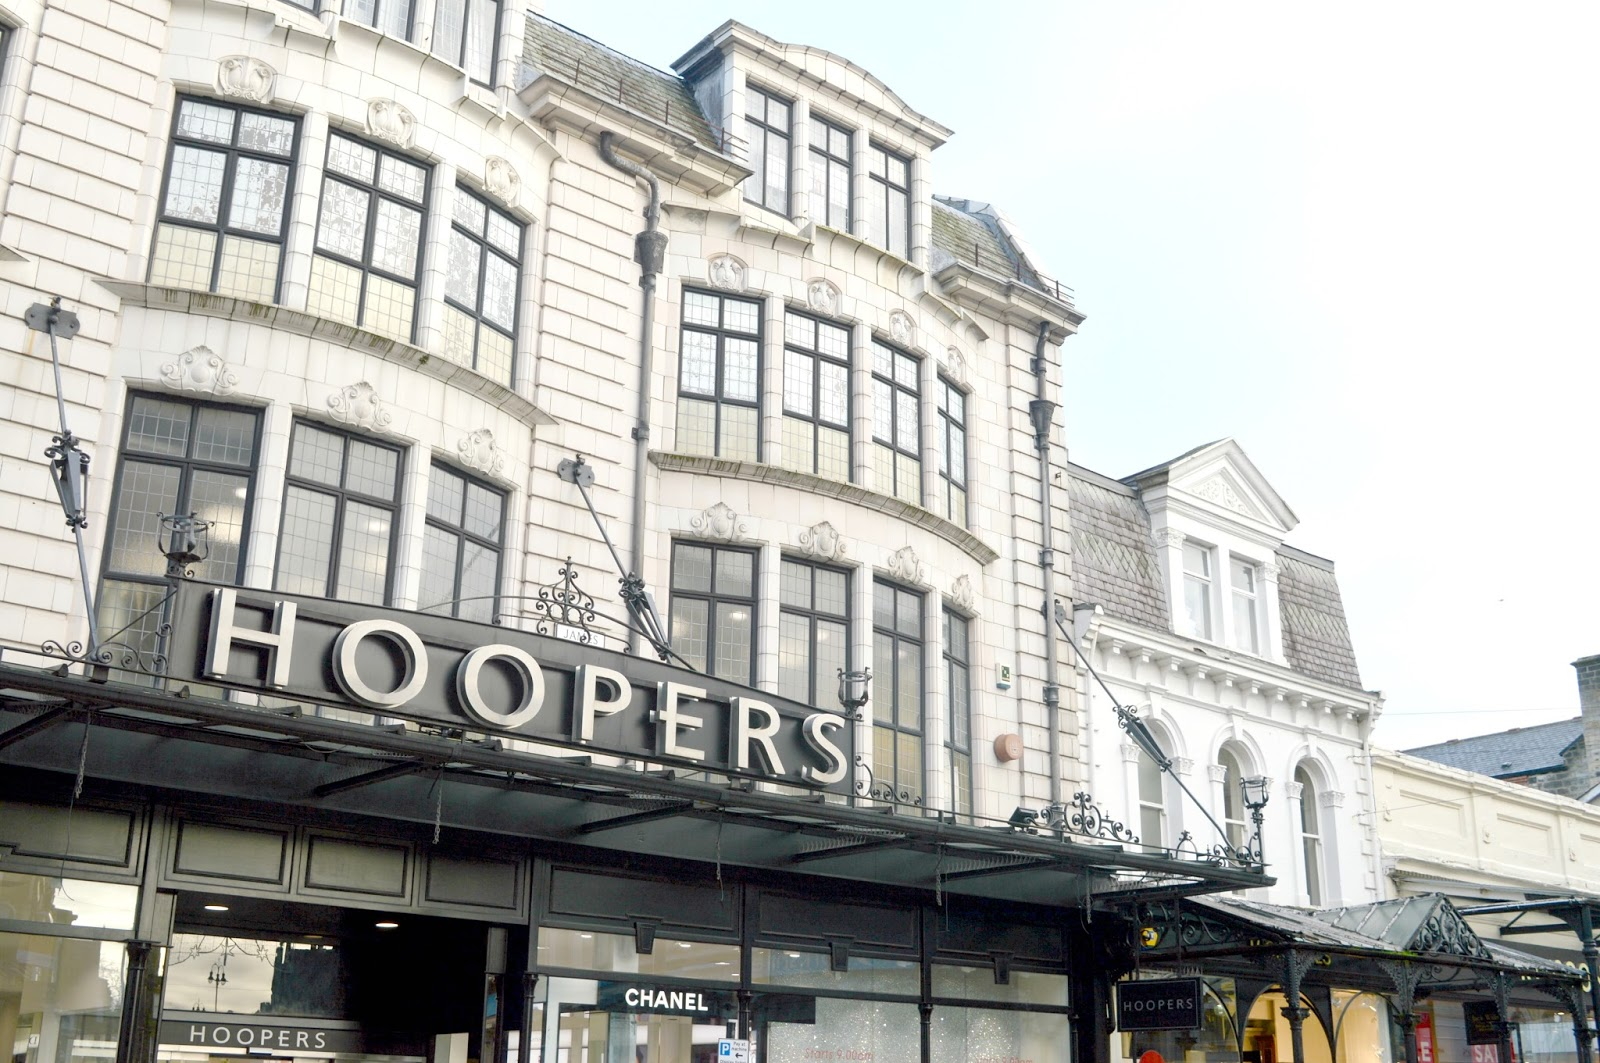 A Weekend in Harrogate - Hoopers